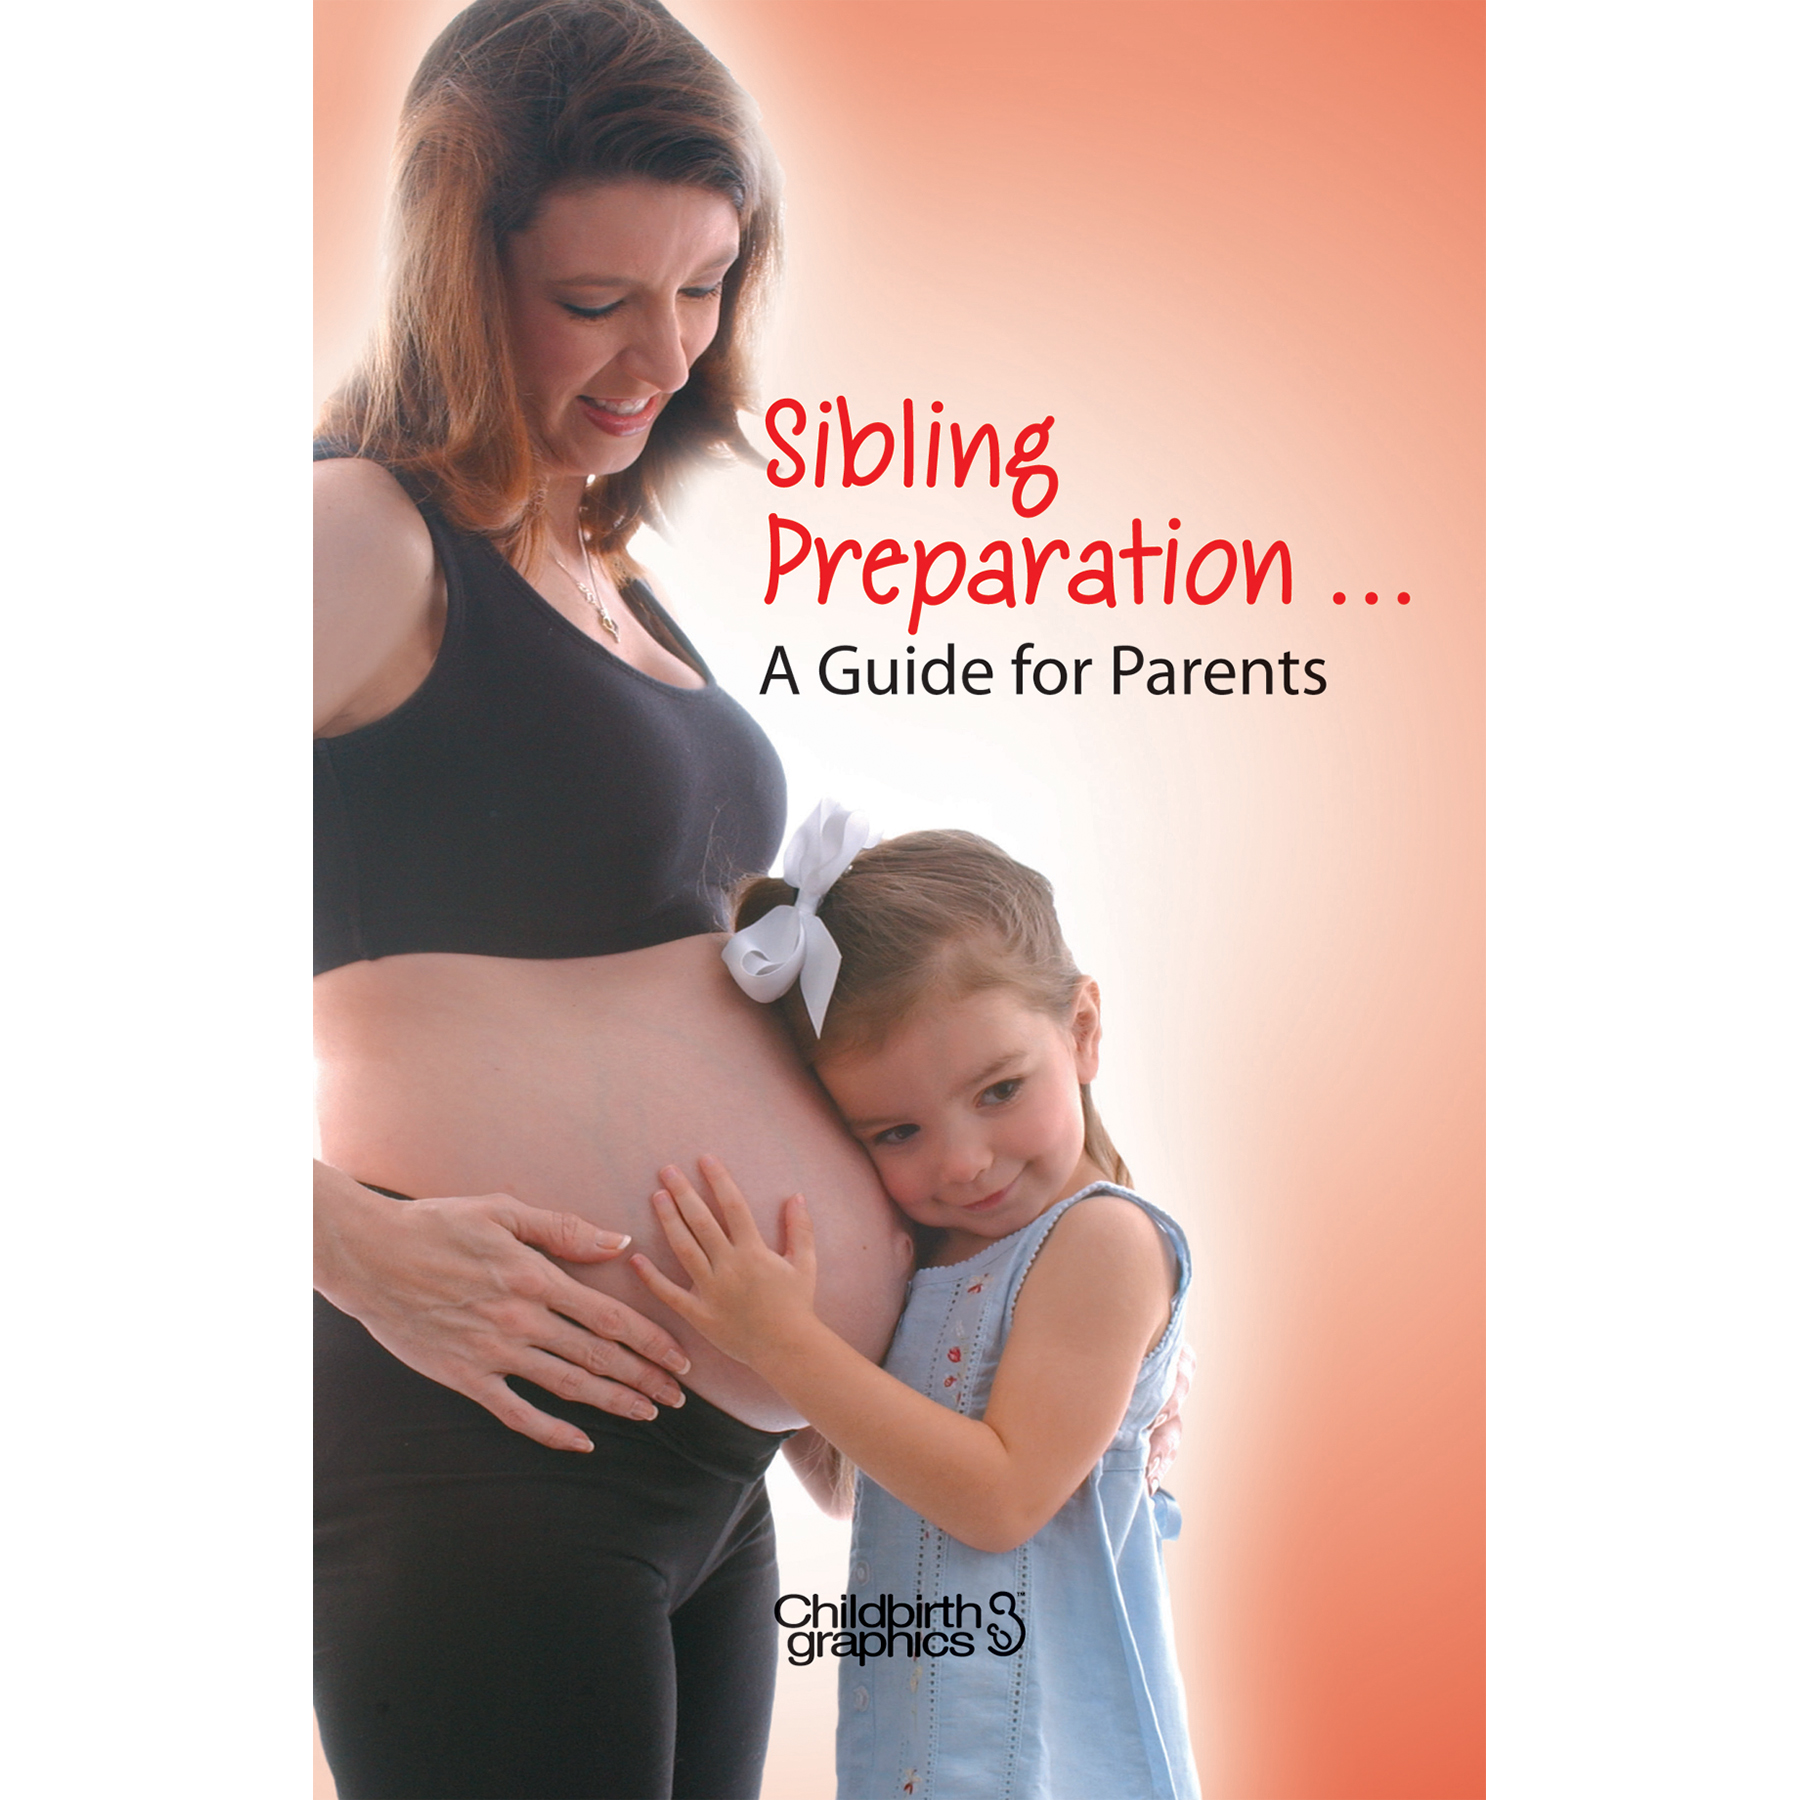 Sibling Preparation for Parents 16-page booklet cover, pregnant mom daughter holding mom's tummy, Childbirth Graphics, 40431